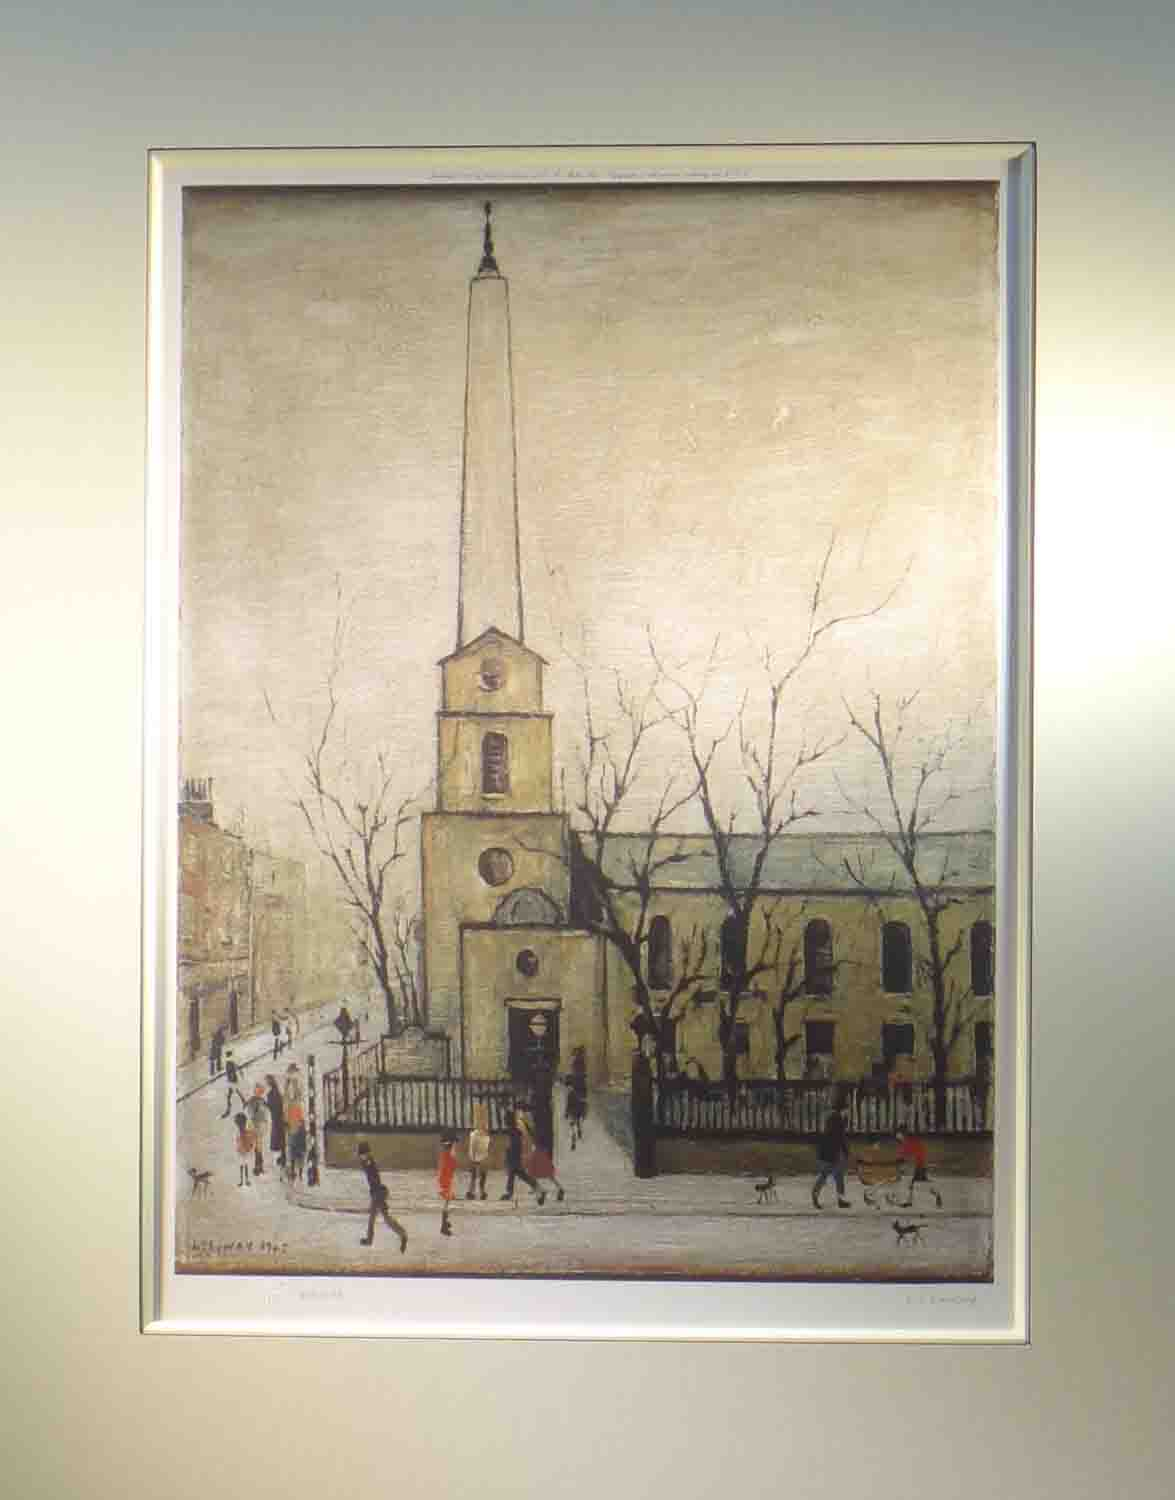 st lukes lowry mounted